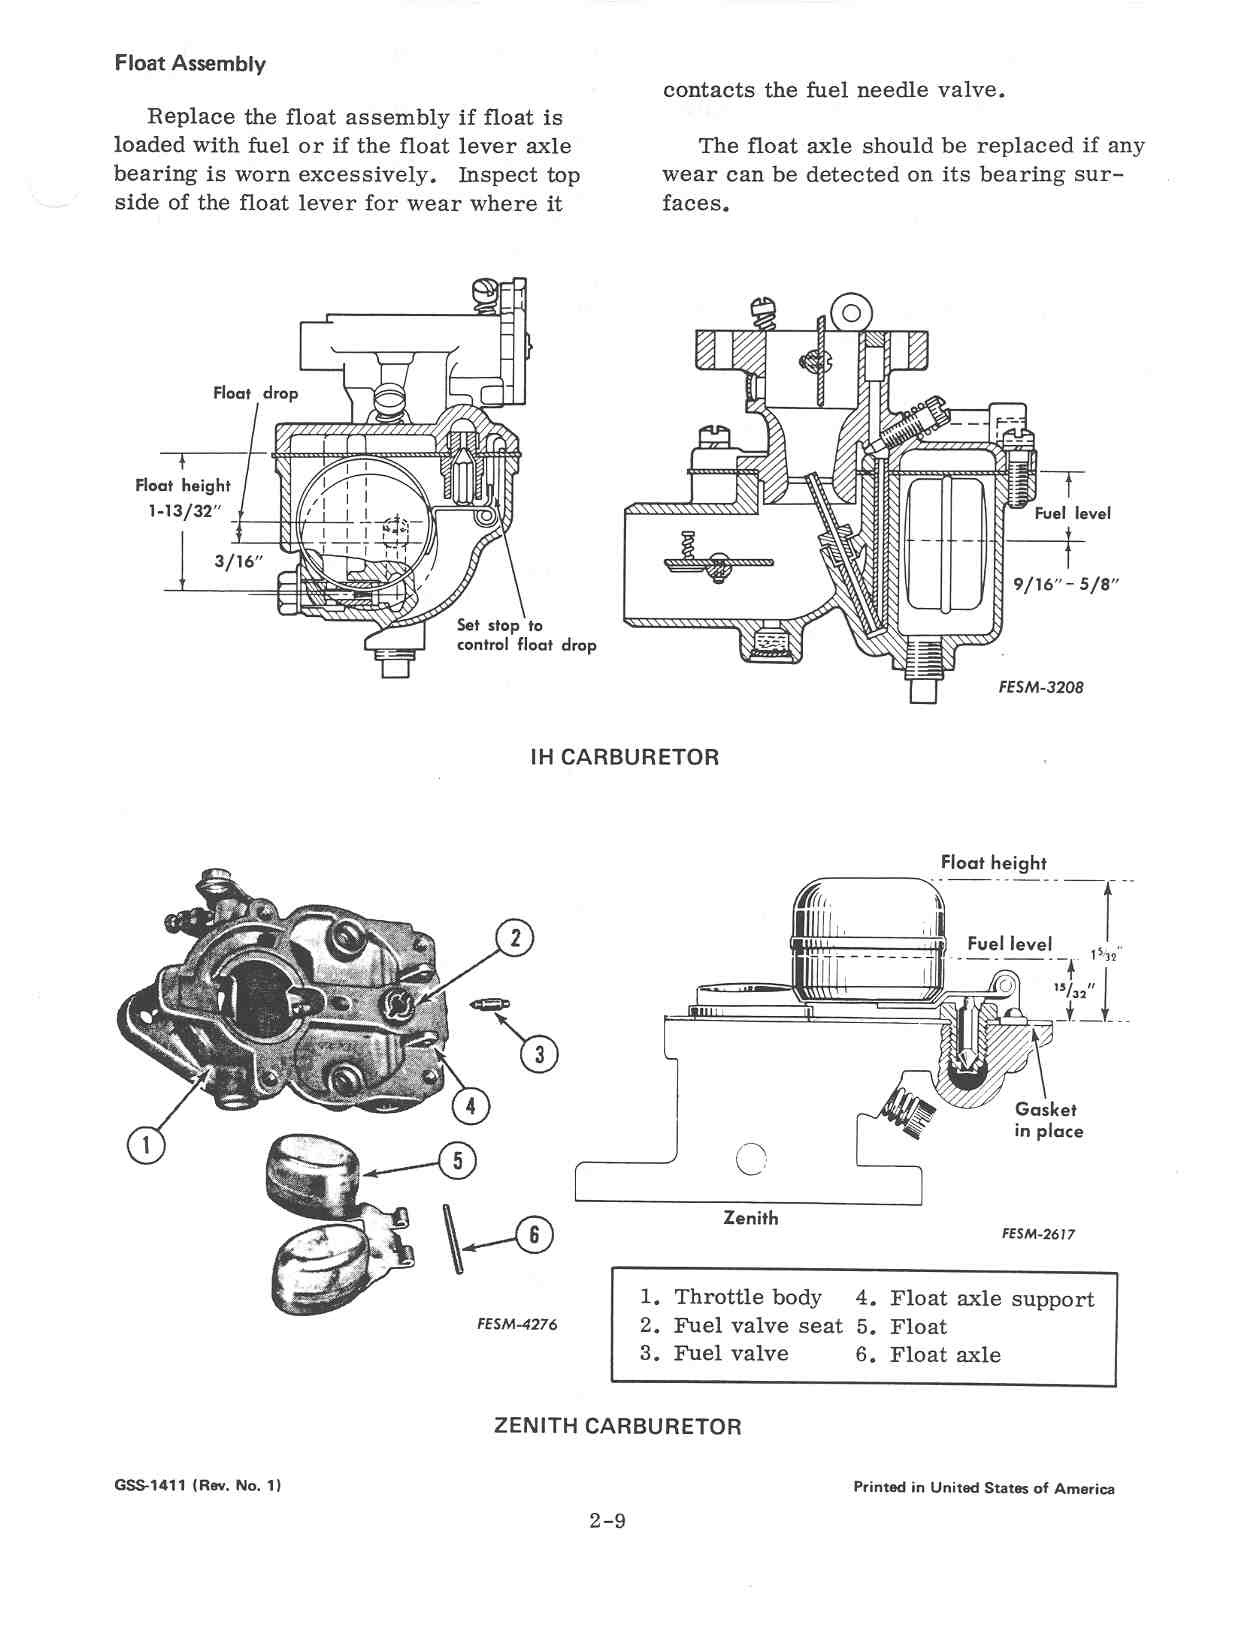 [DIAGRAM] 1950 51 Ford 8n Tractor Wiring Diagrams FULL